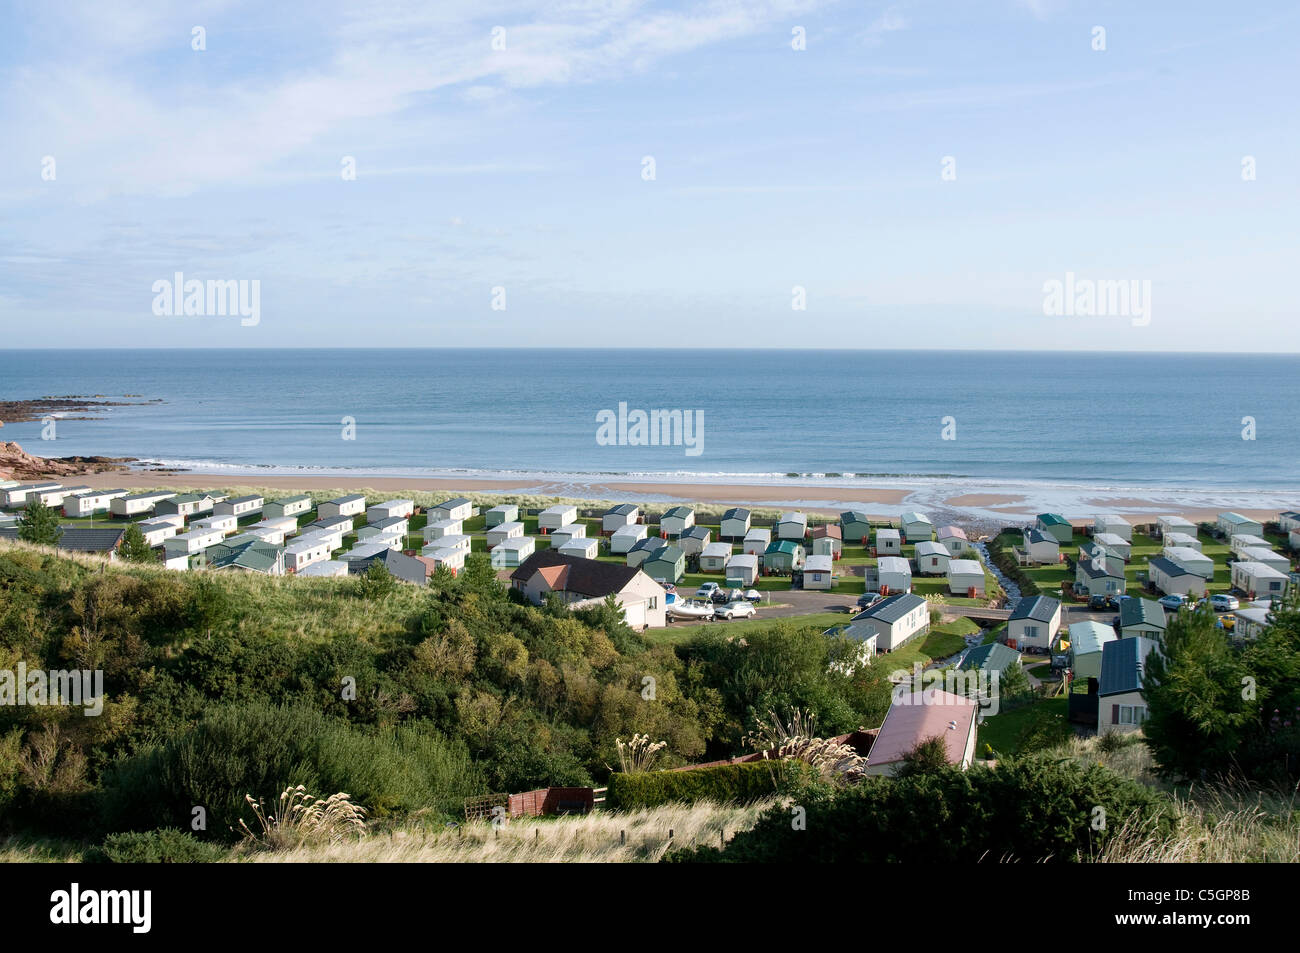 Caravan park at Pease Bay - Scottish Borders - Stock Image